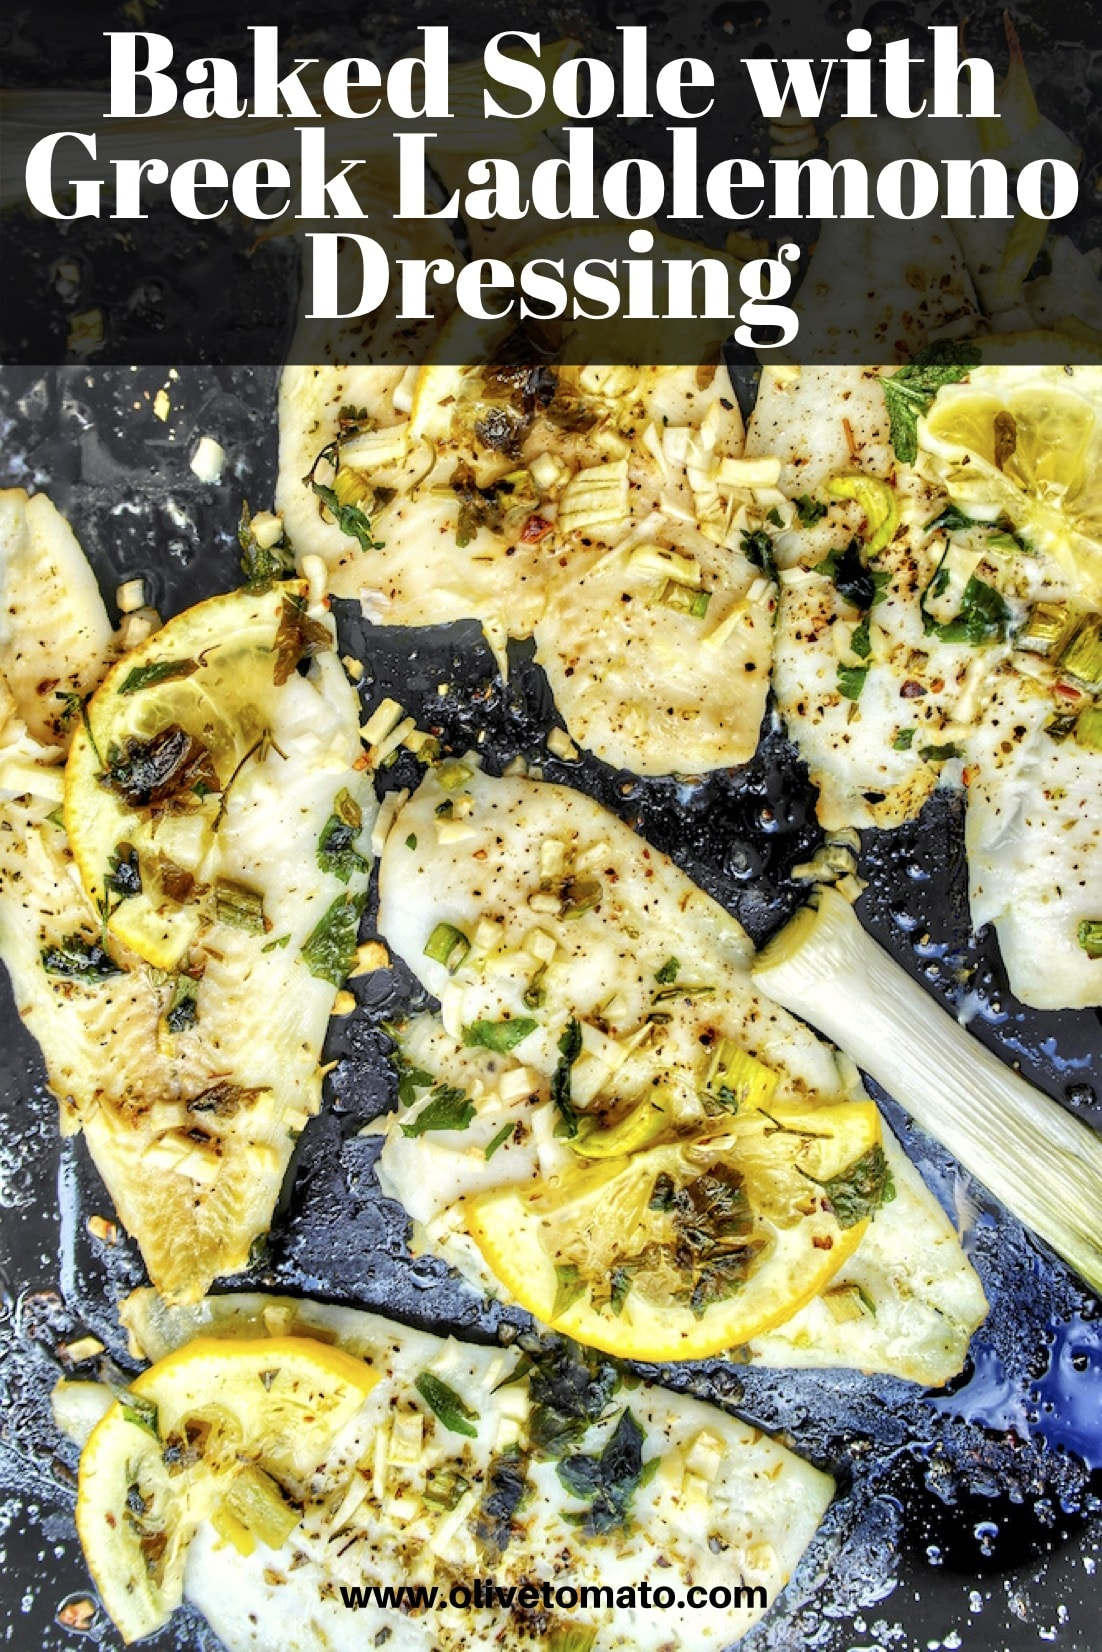 Baked sole. For this easy and delicious sheet pan fish recipe, sole fillets are baked with the flavorful Greek ladolemono dressing and herbs.